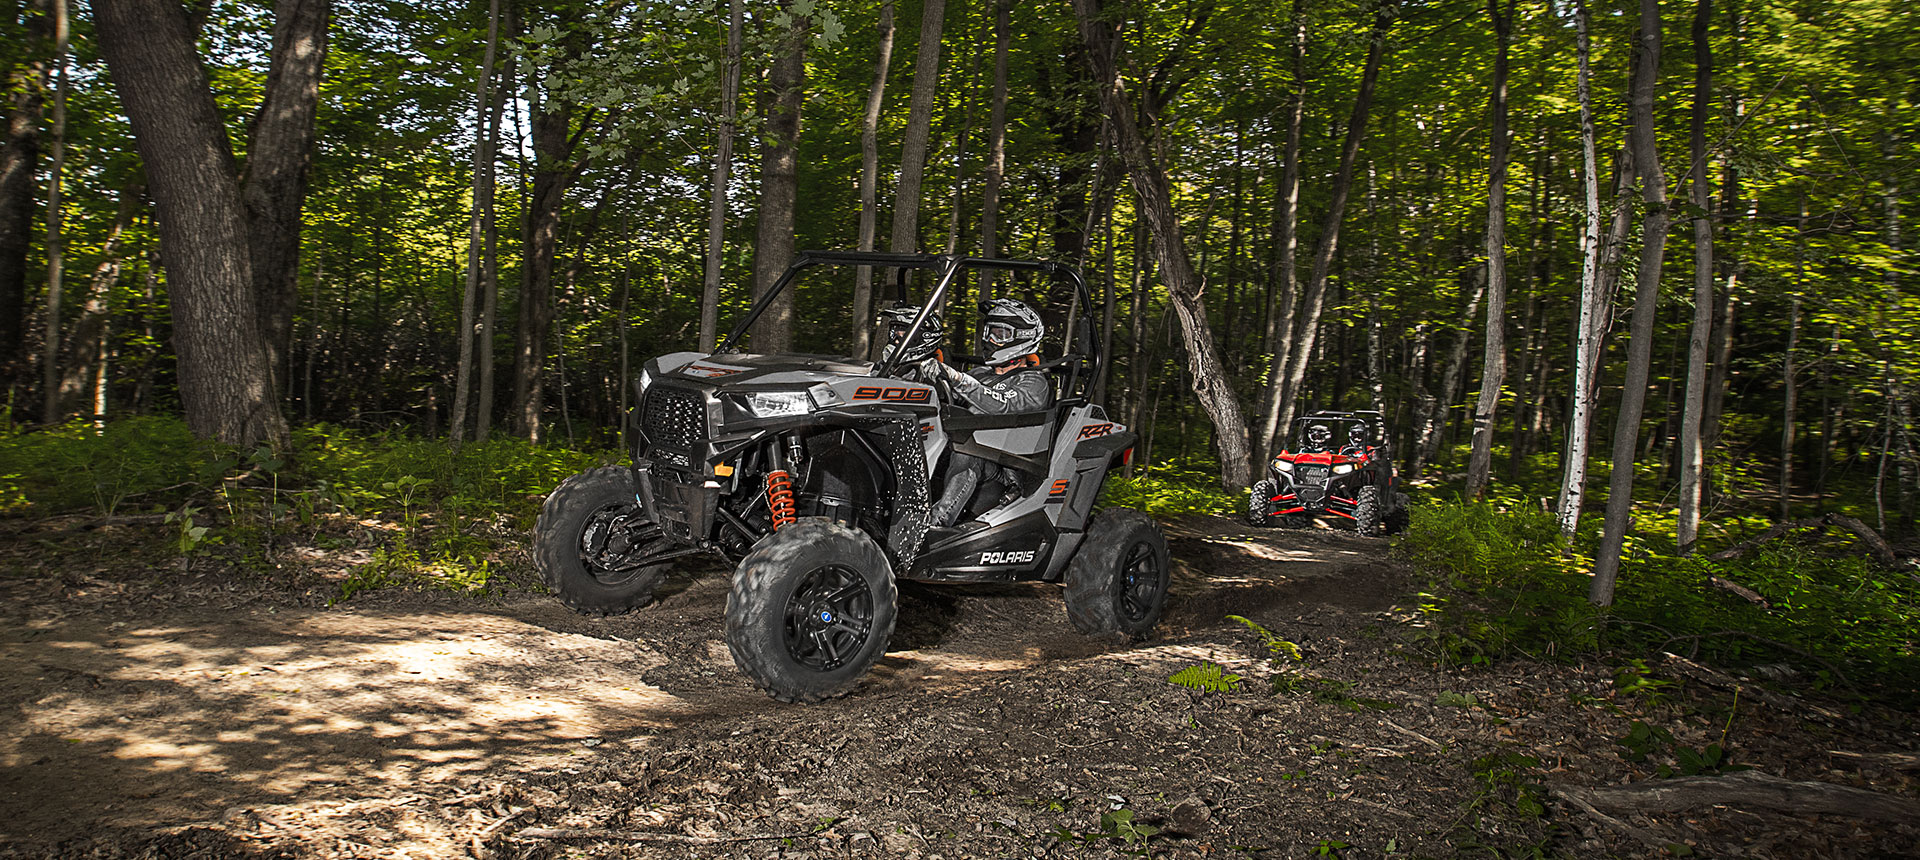 2019 Polaris RZR S 900 EPS in Estill, South Carolina - Photo 8